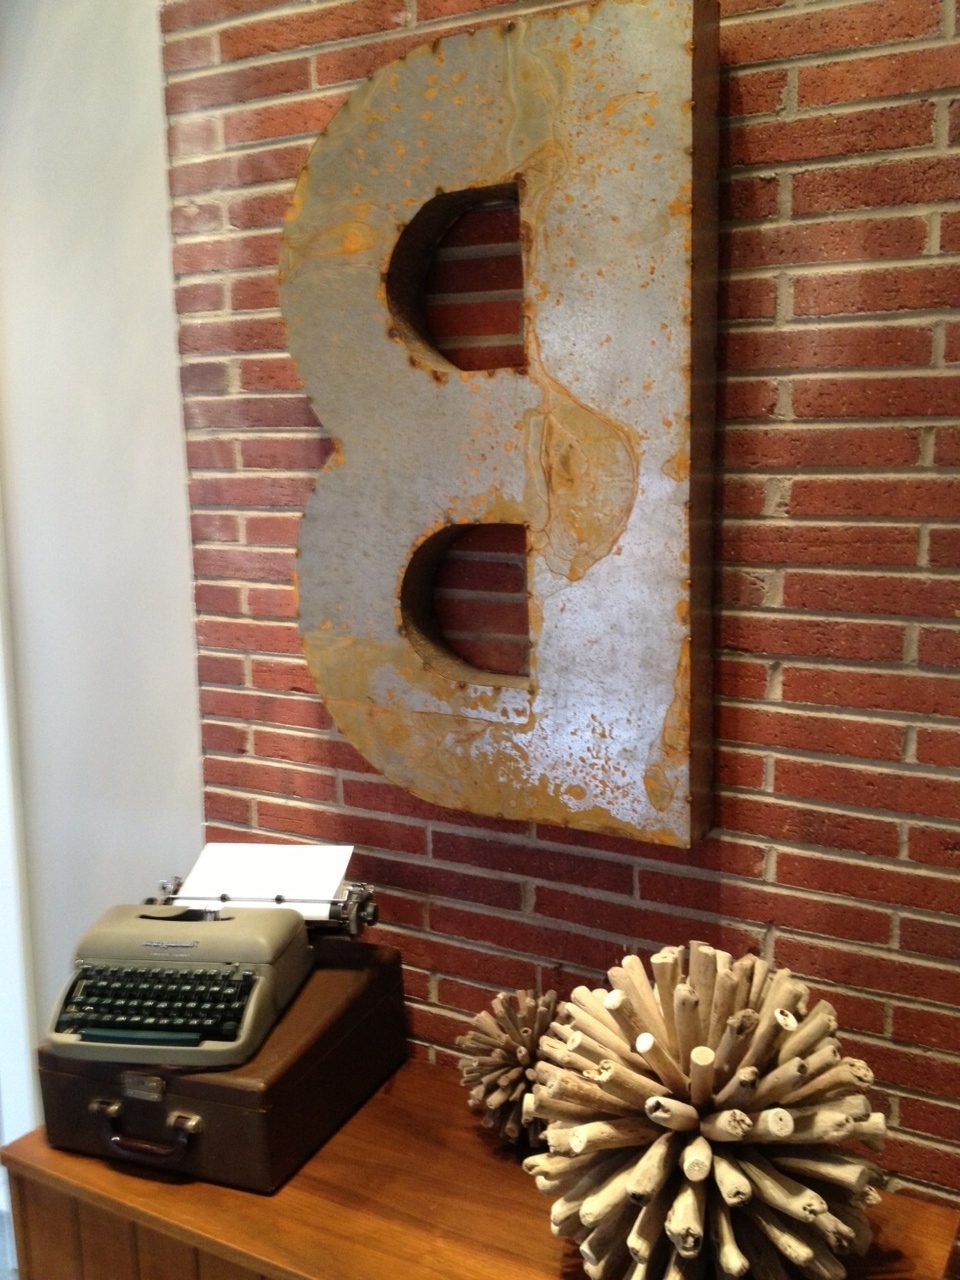 Most Current Metal Letter Wall Art With Regard To 42 Metal Letter Wall Art, Vintage Distressed Metal Sign Letter G (View 8 of 15)